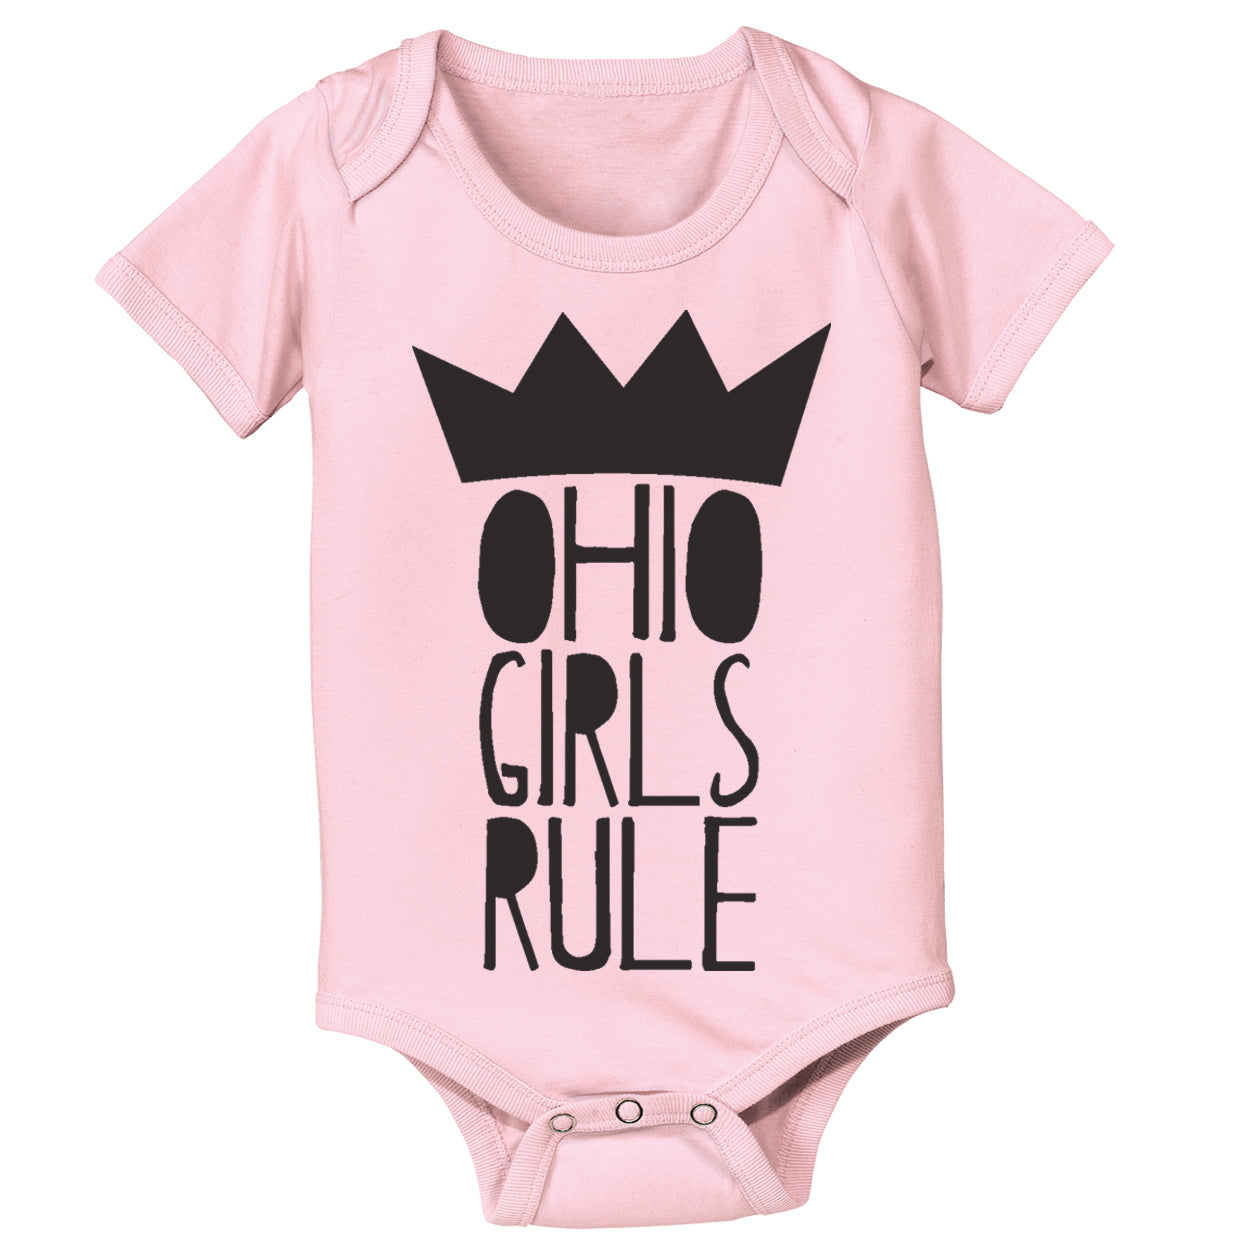 Ohio Girls Rule Baby One Piece - Clothe Ohio - Soft Ohio Shirts